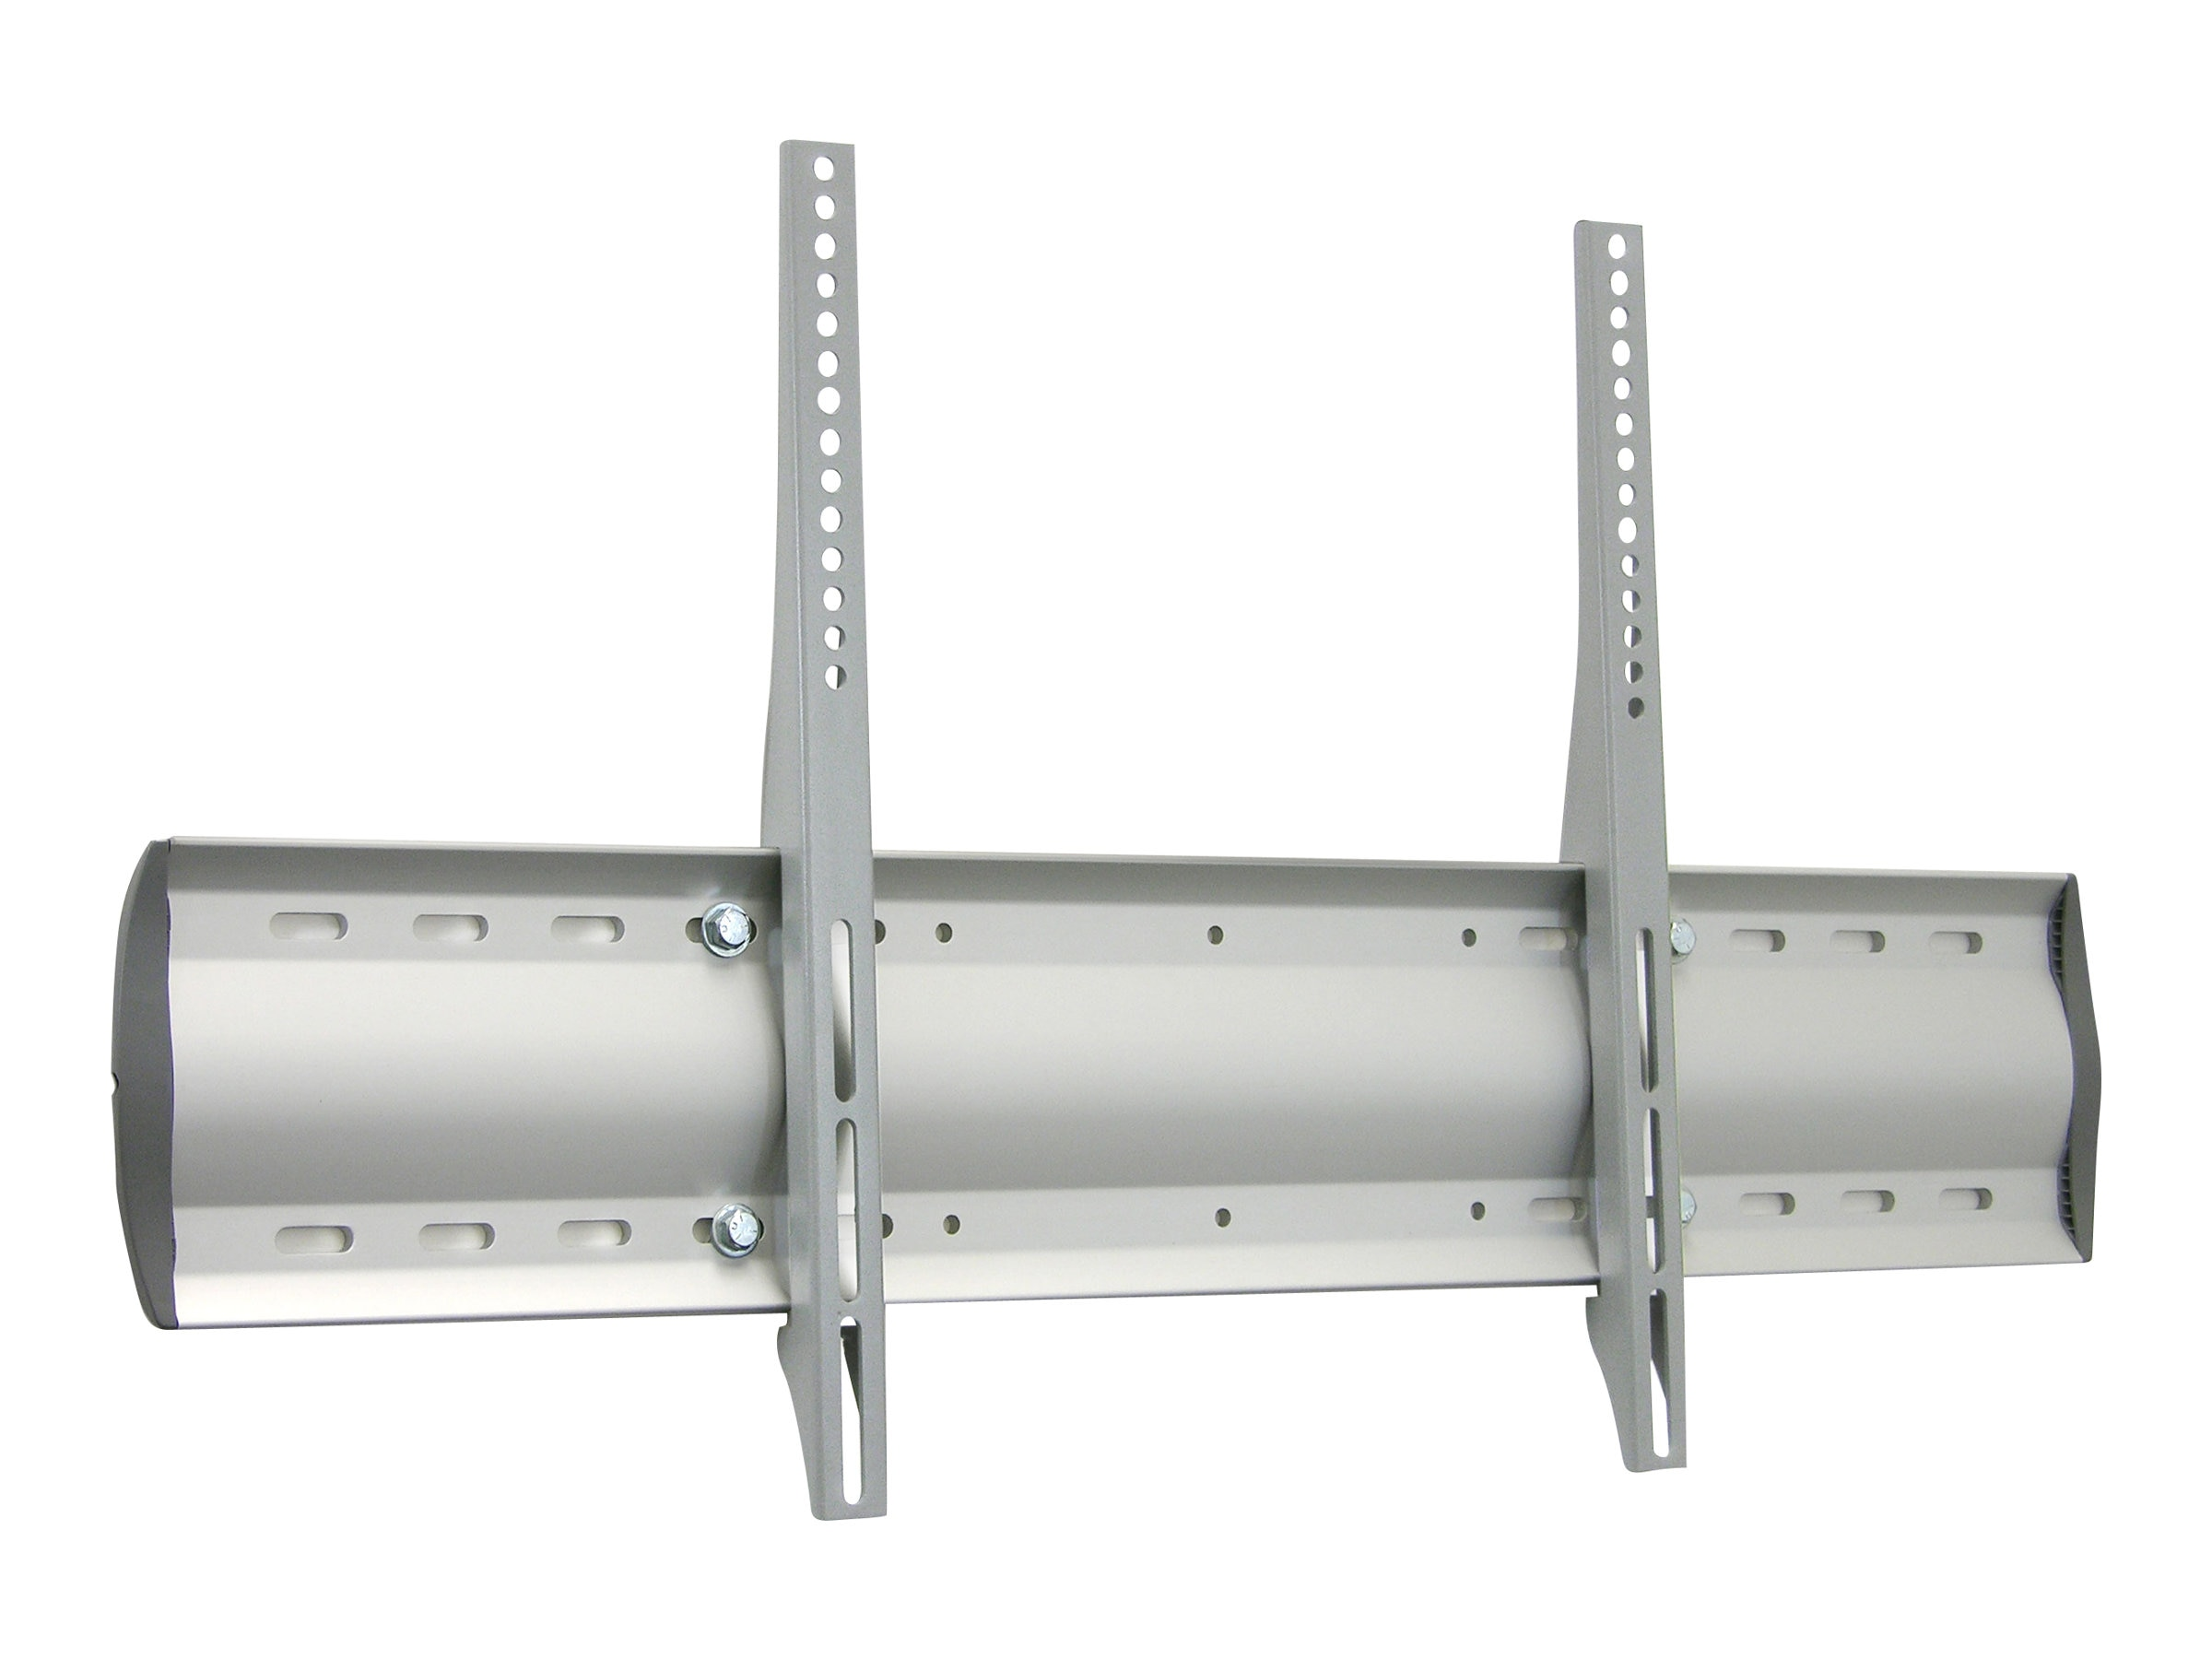 Ergotron Low-Profile Wall Mount for Flat Panels 32 or Greater